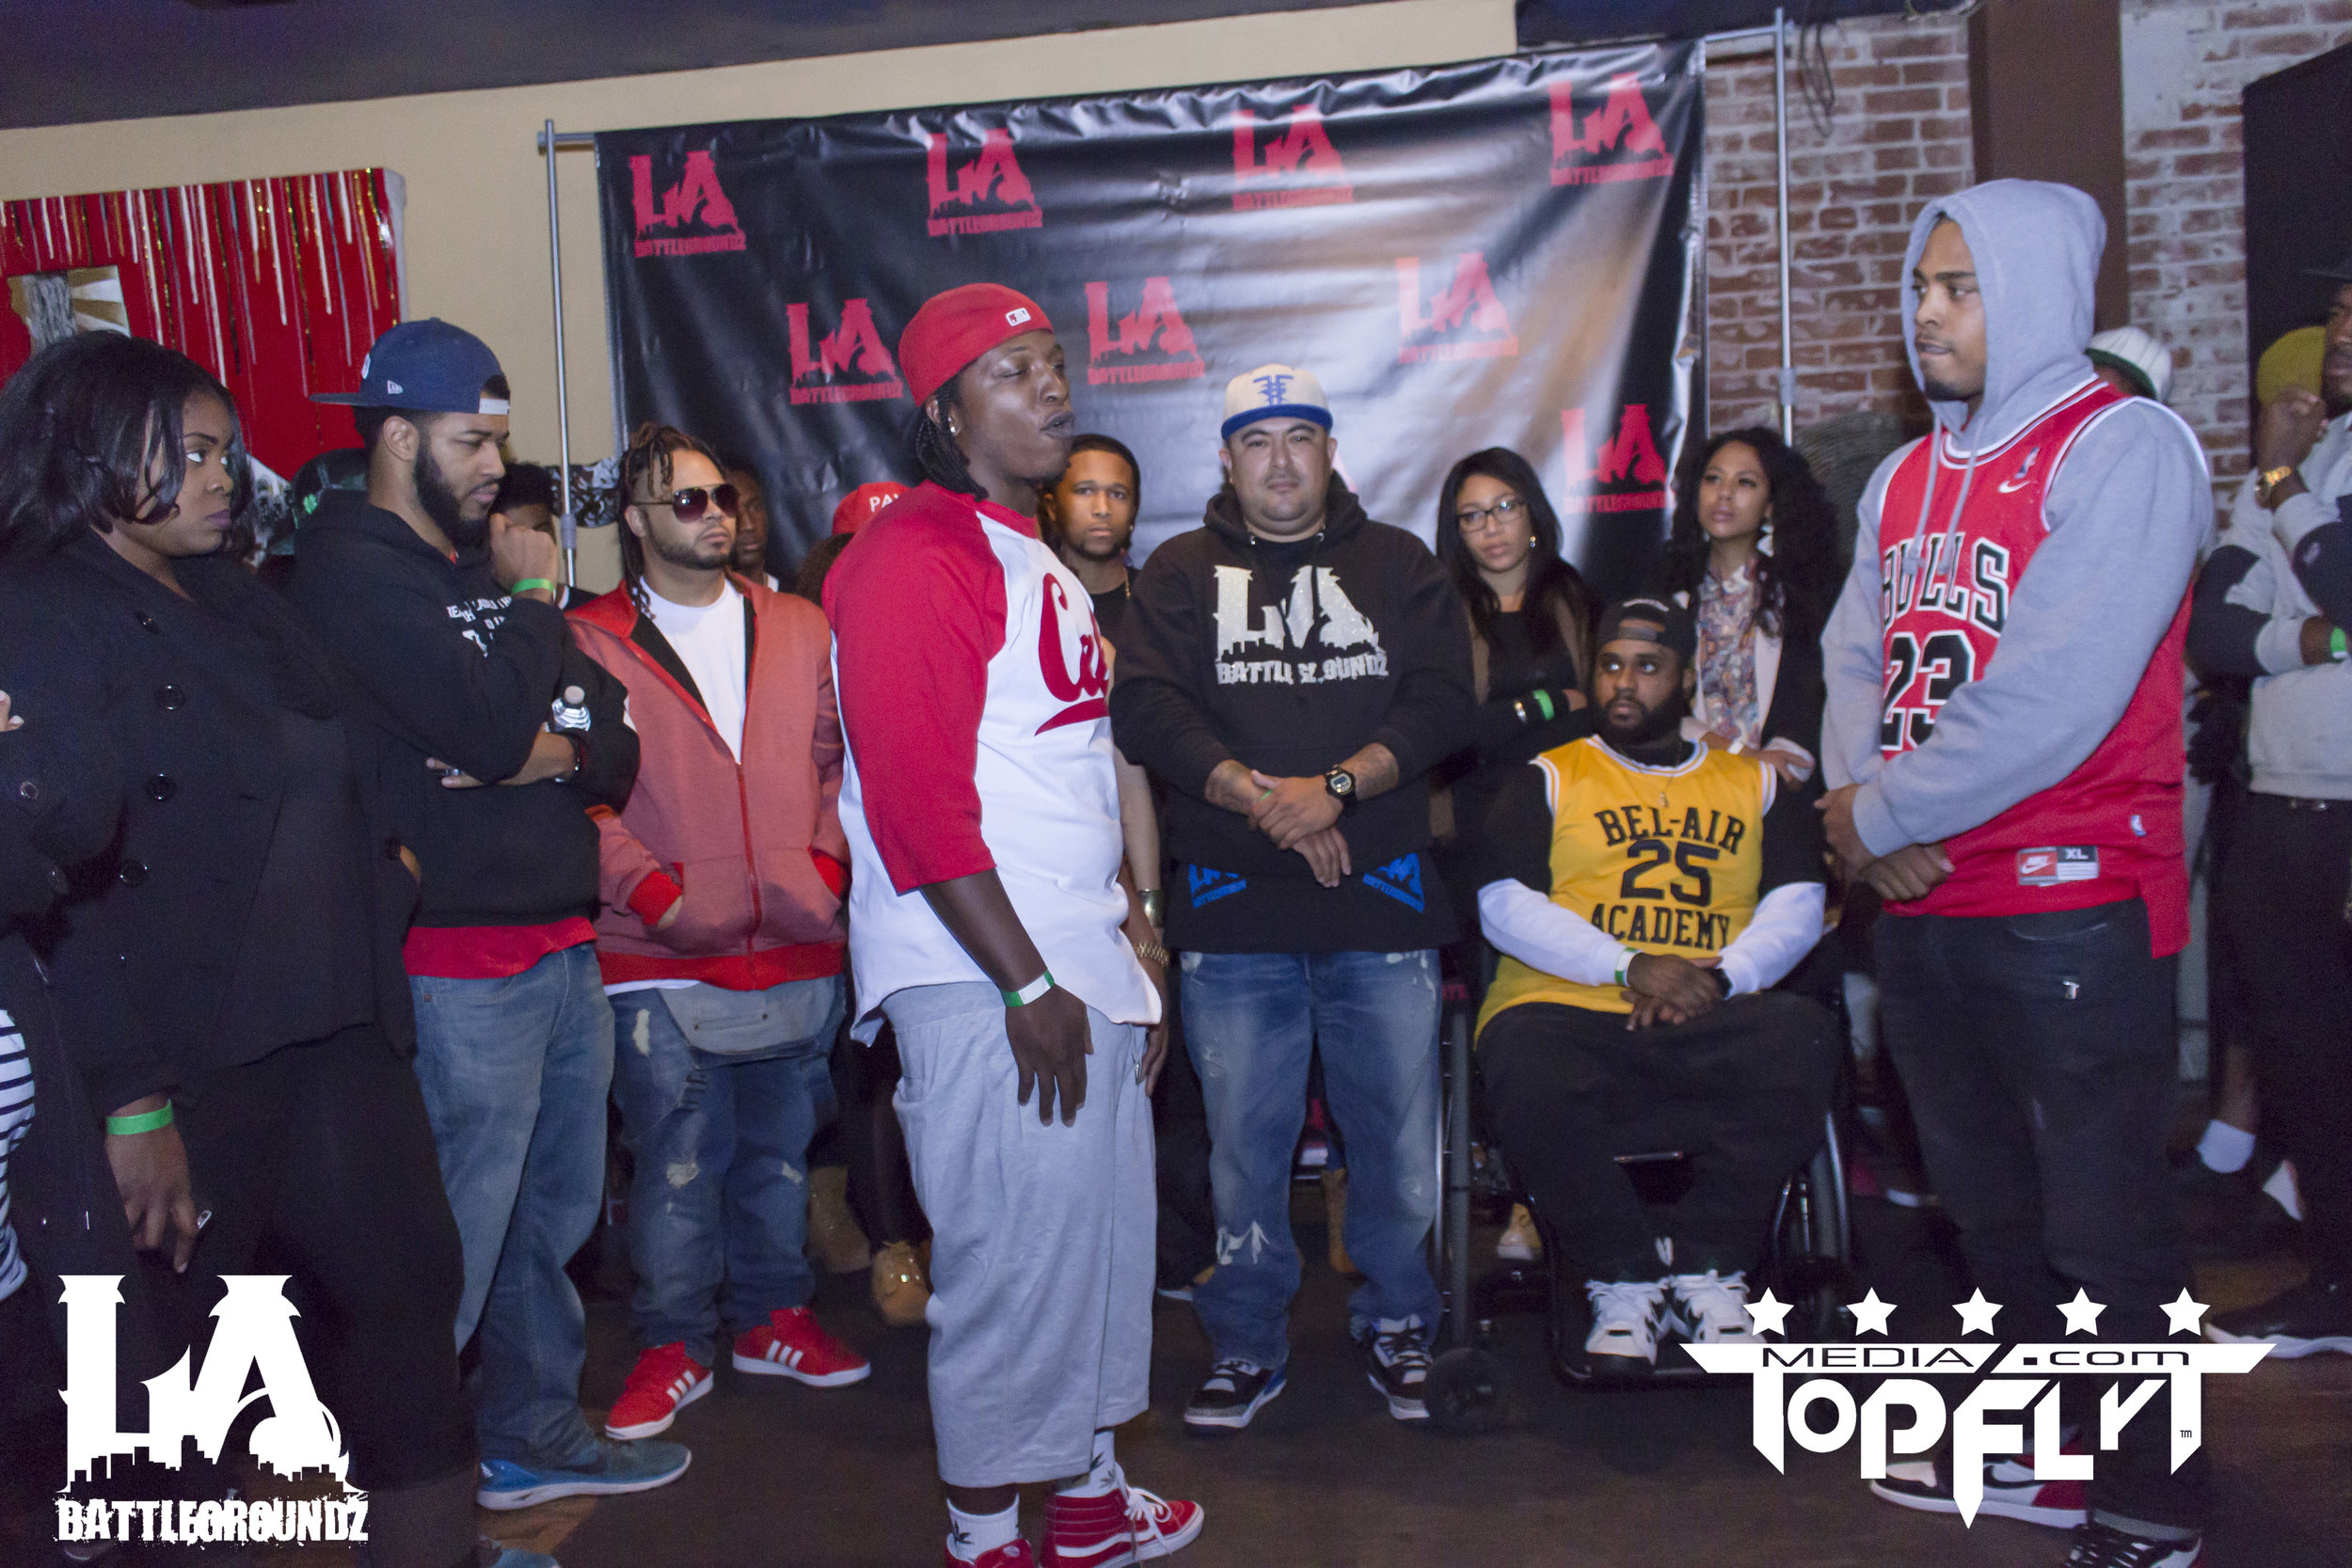 LA Battlegroundz - Decembarfest - The Christening_36.jpg